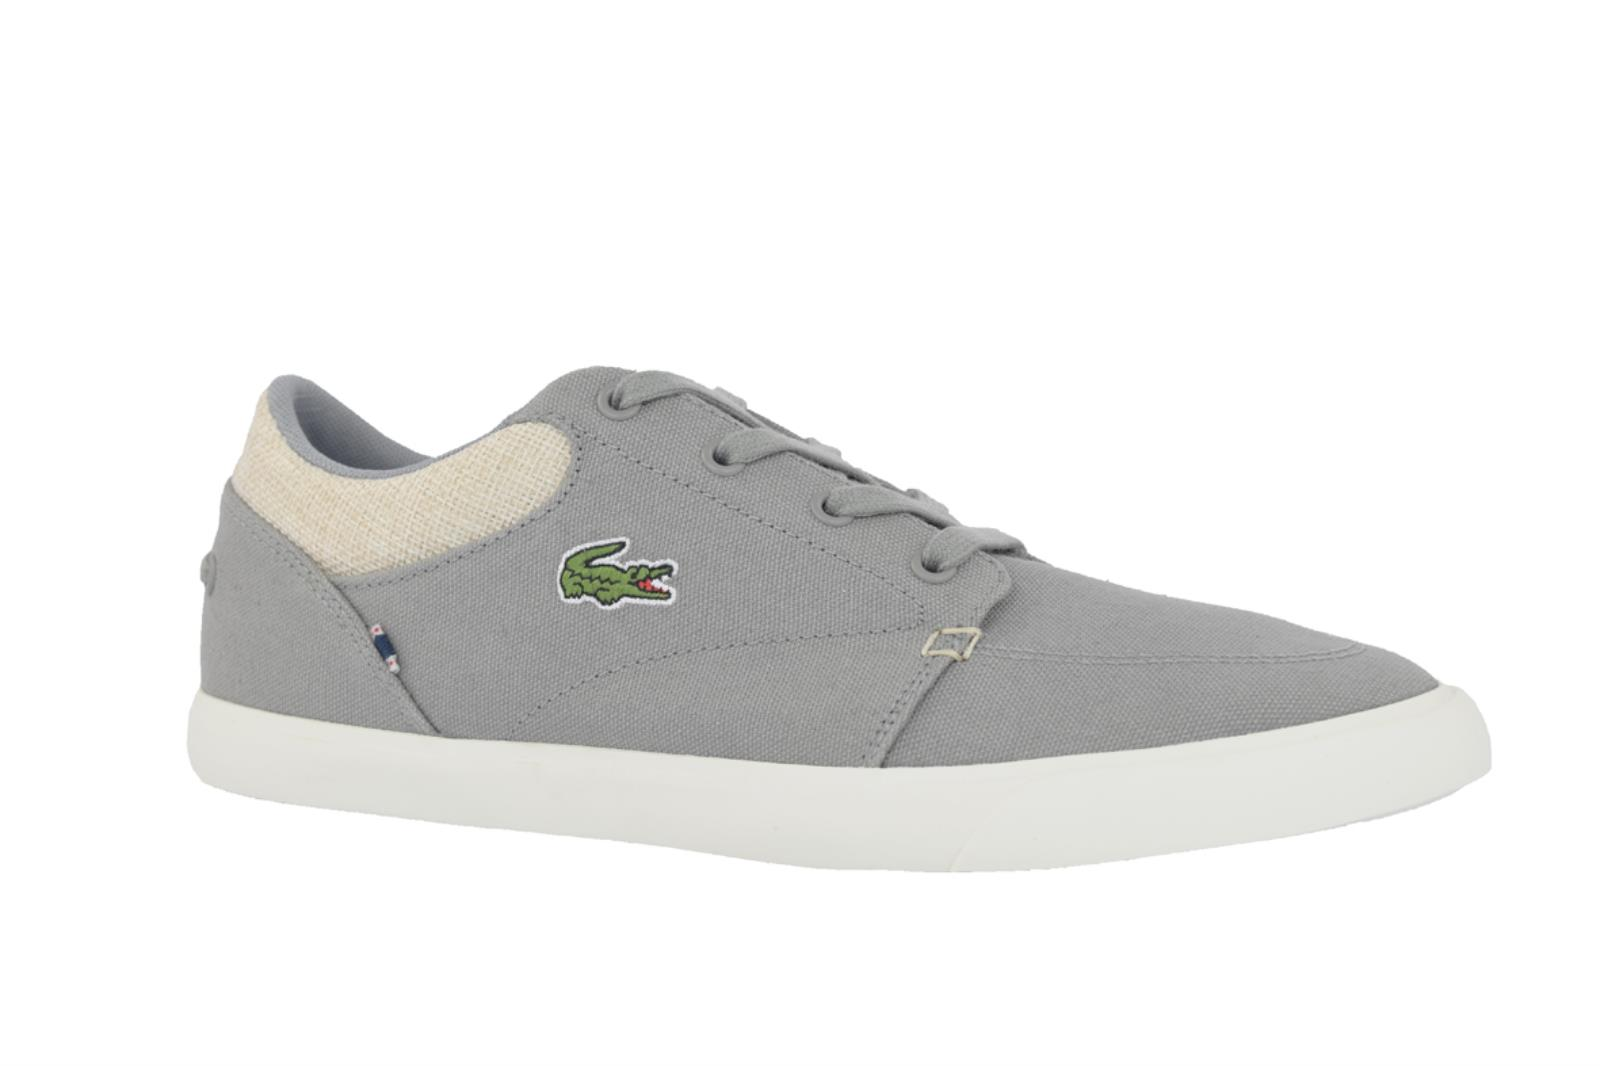 LACOSTE BAYLISS-6H2 SNEAKERS SNEAKERS BAYLISS-6H2 UOMO TELA GRIGIO 4b8973